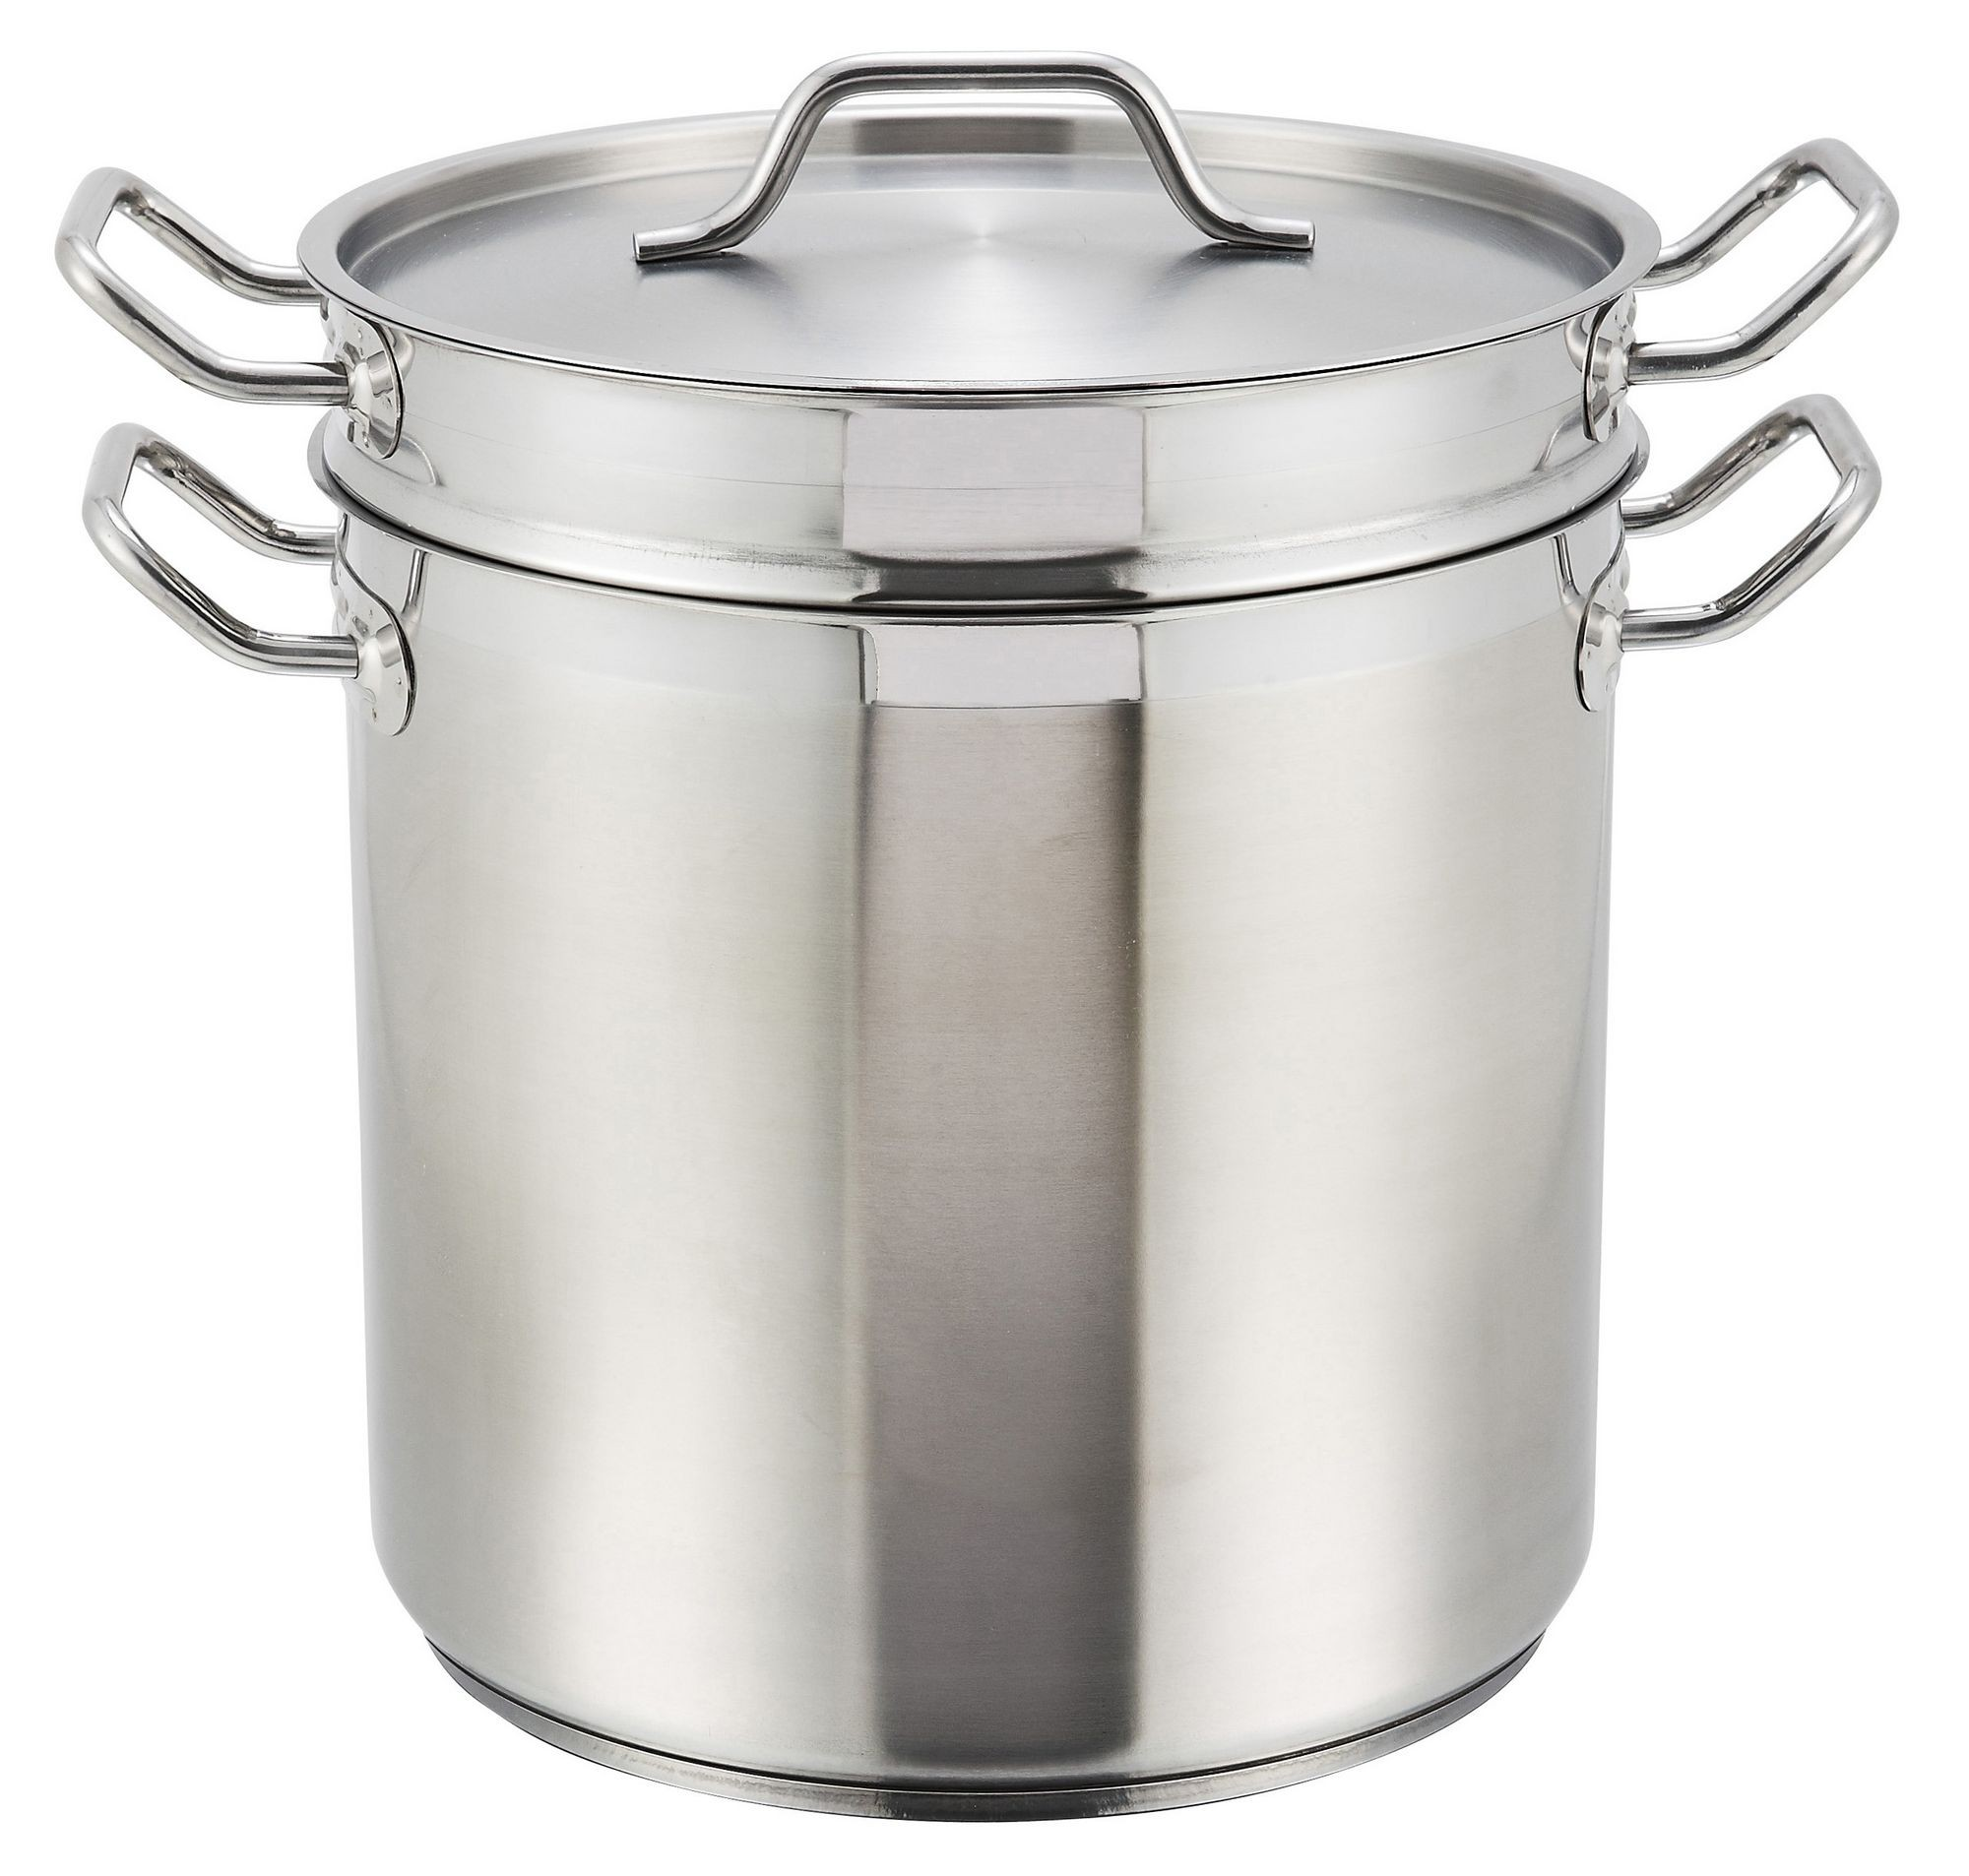 Winco SSDB-8S Stainless Steel 8 Qt. Steamer/Pasta Cooker with Cover